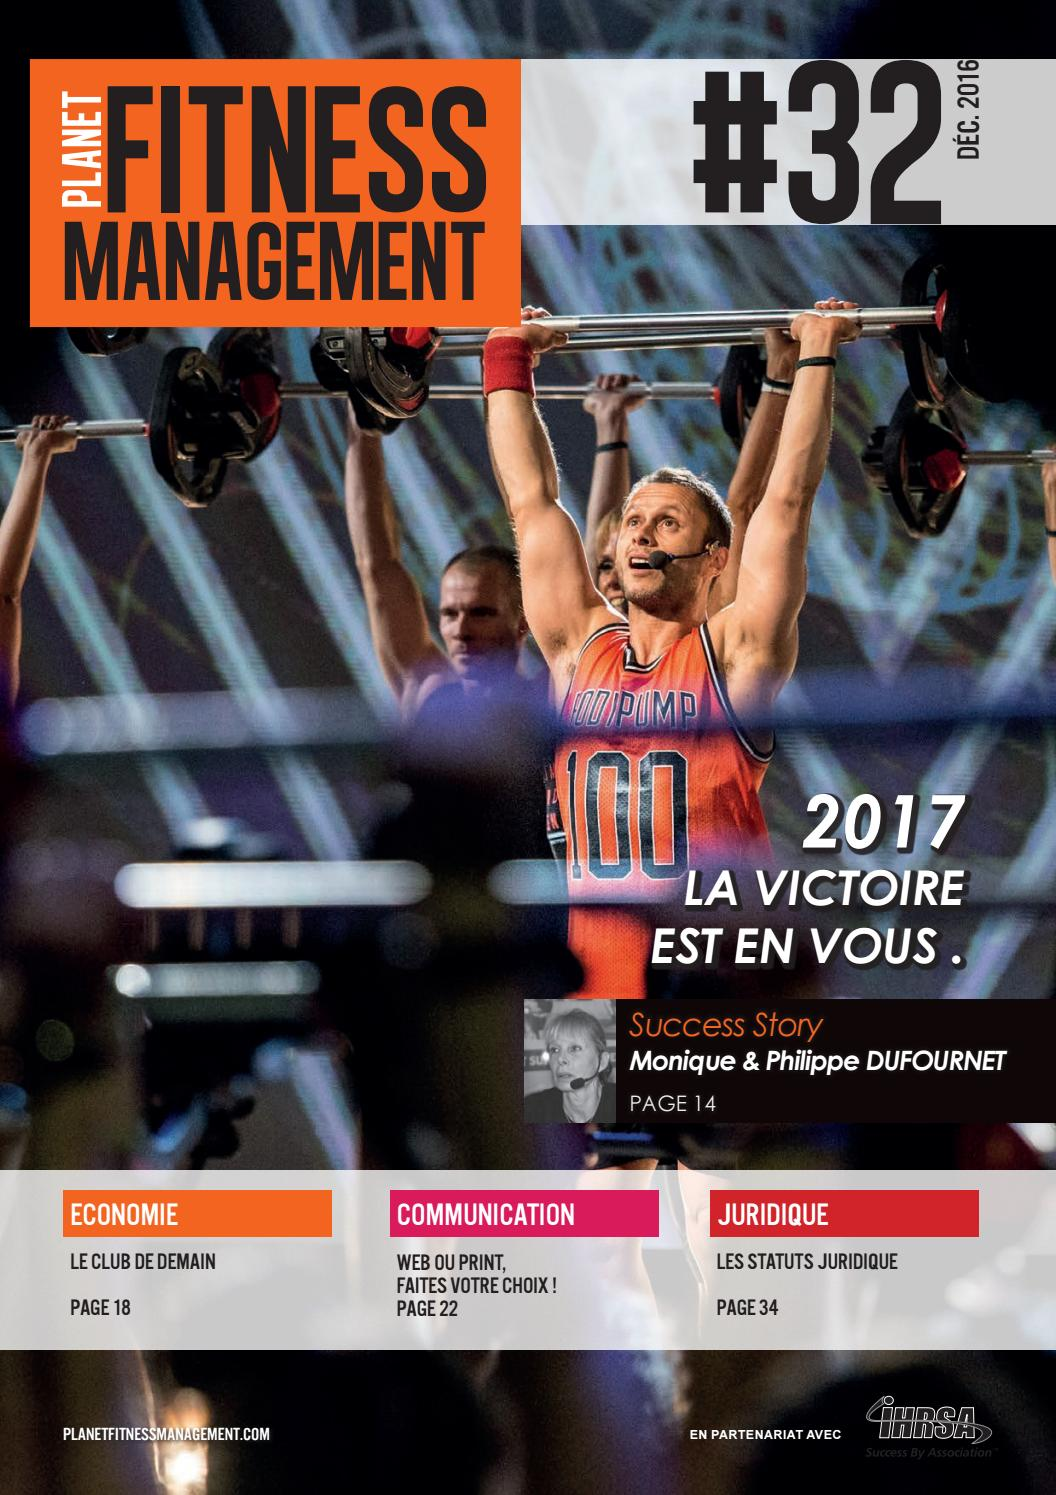 Planet Fitness Management  32 by Les Mills France - issuu 00e44357741